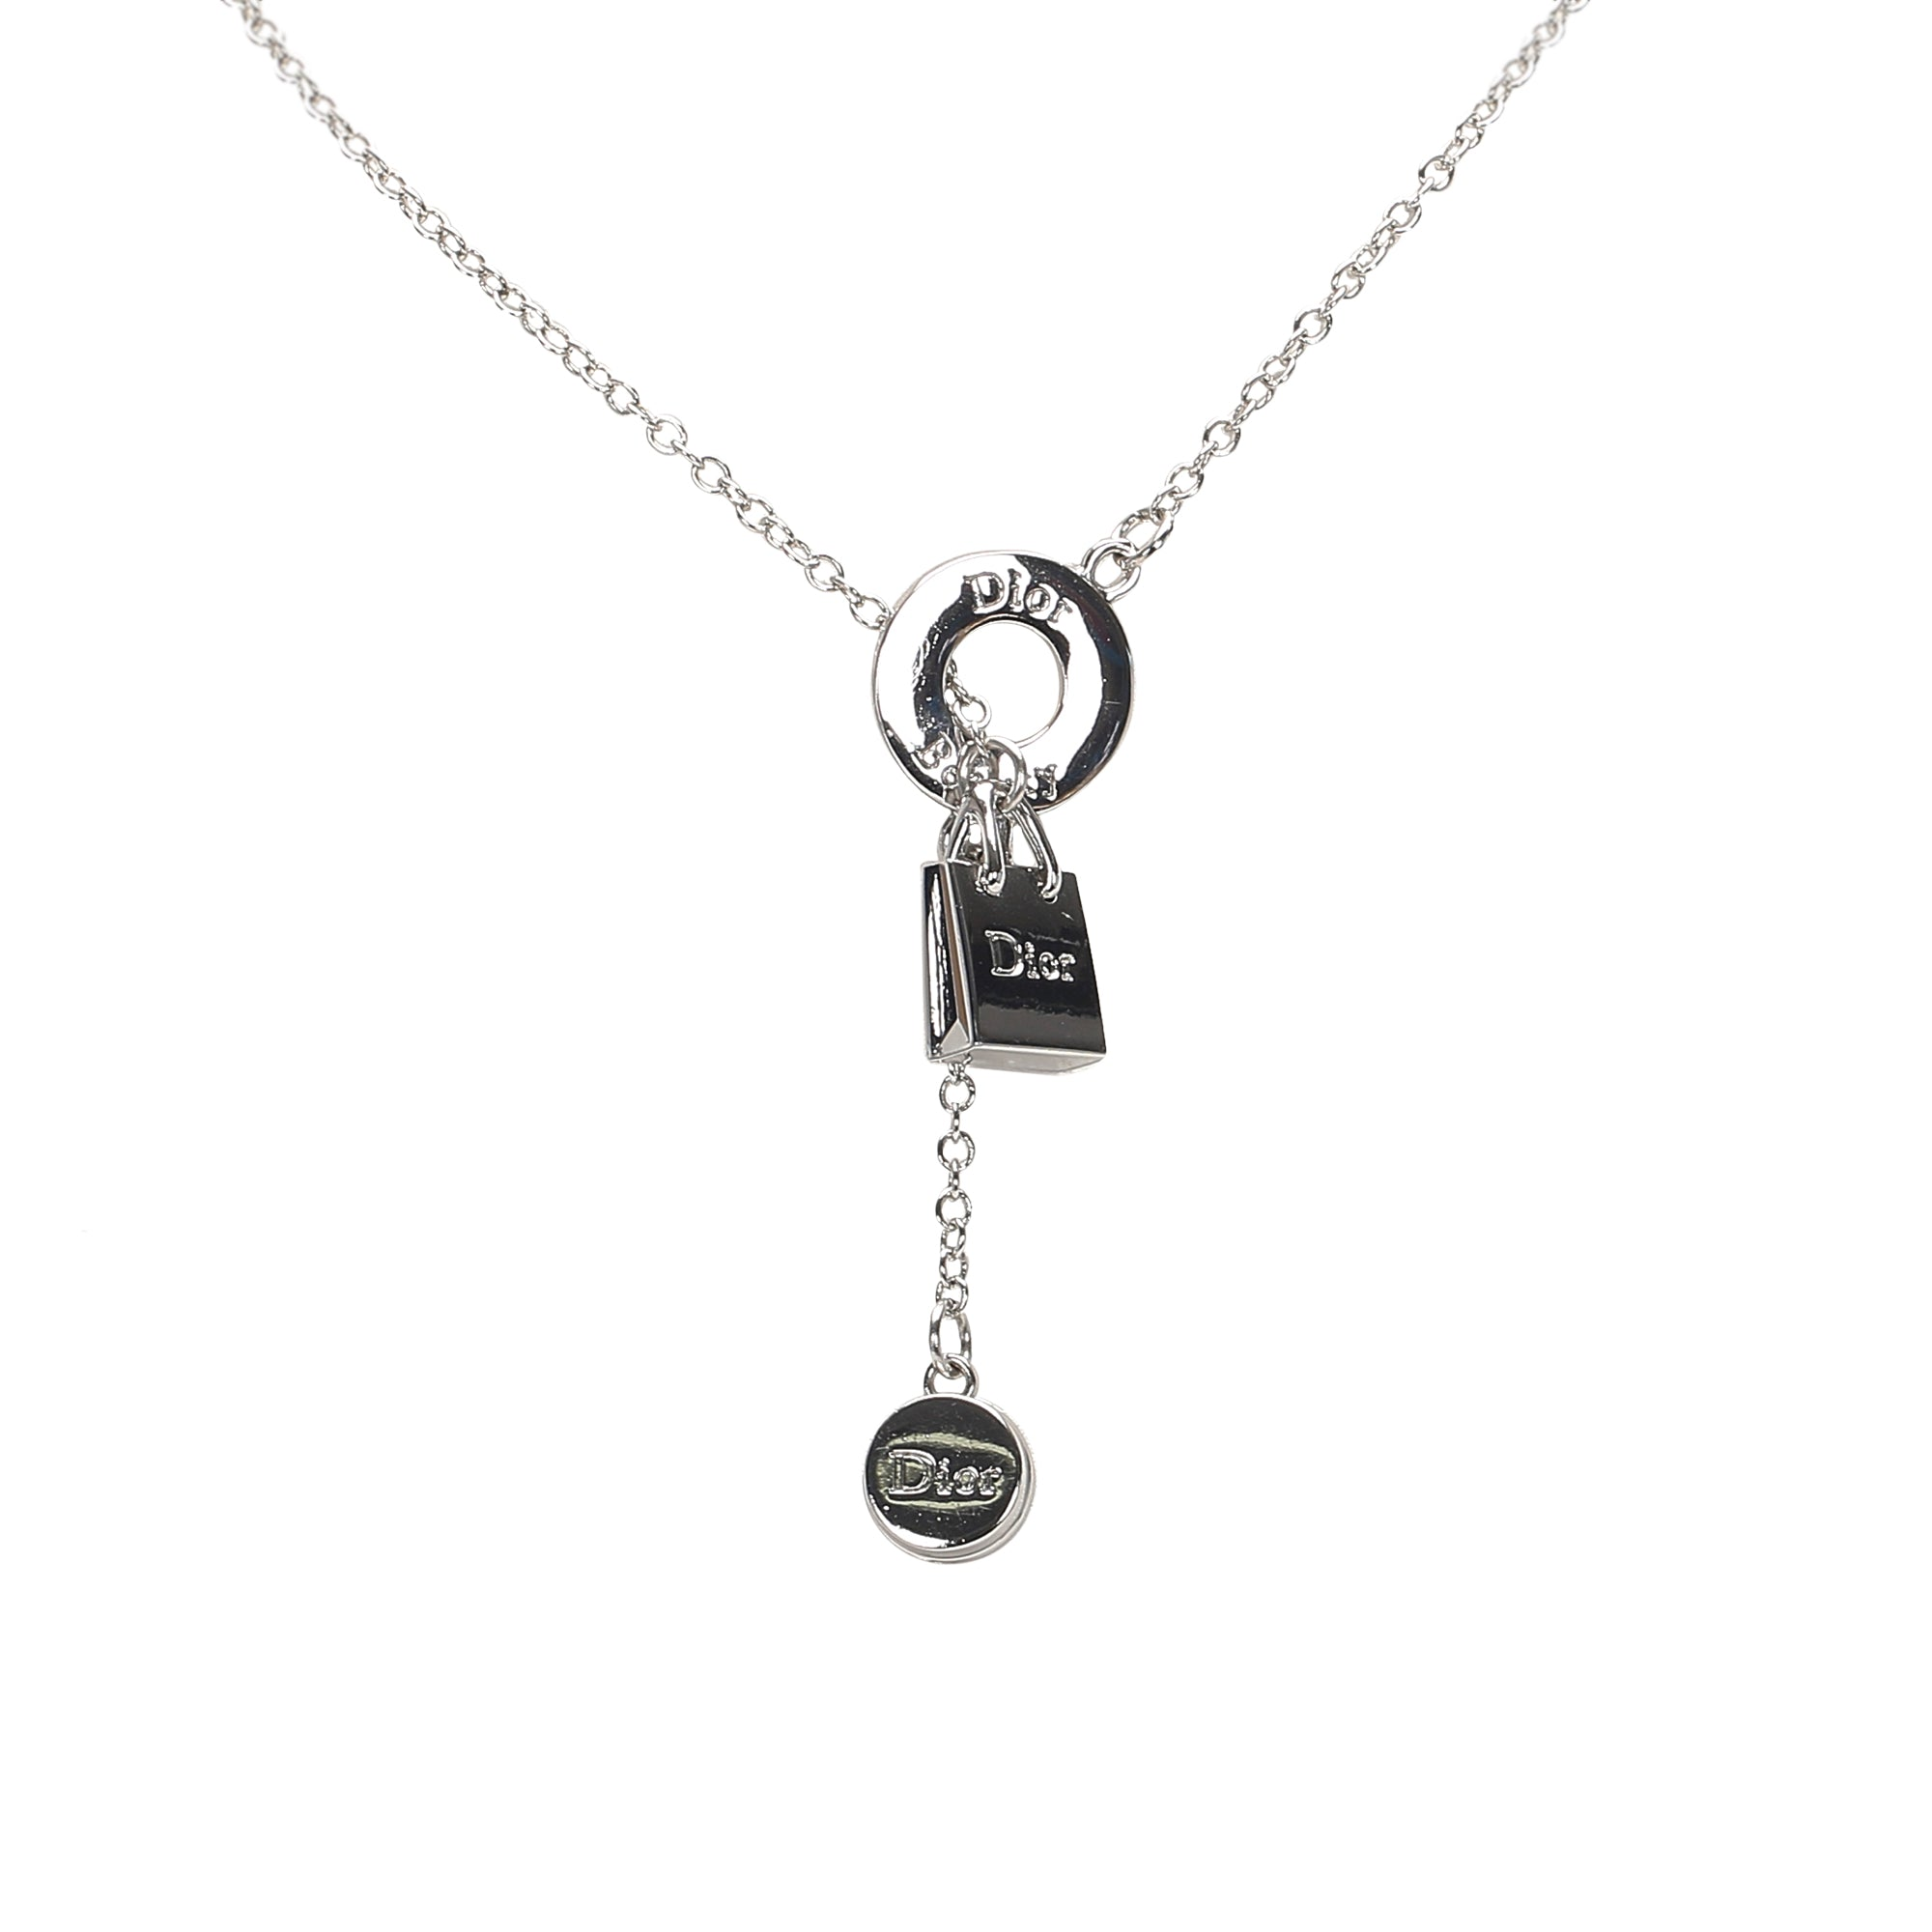 Dior Silver Beauty Charm Necklace